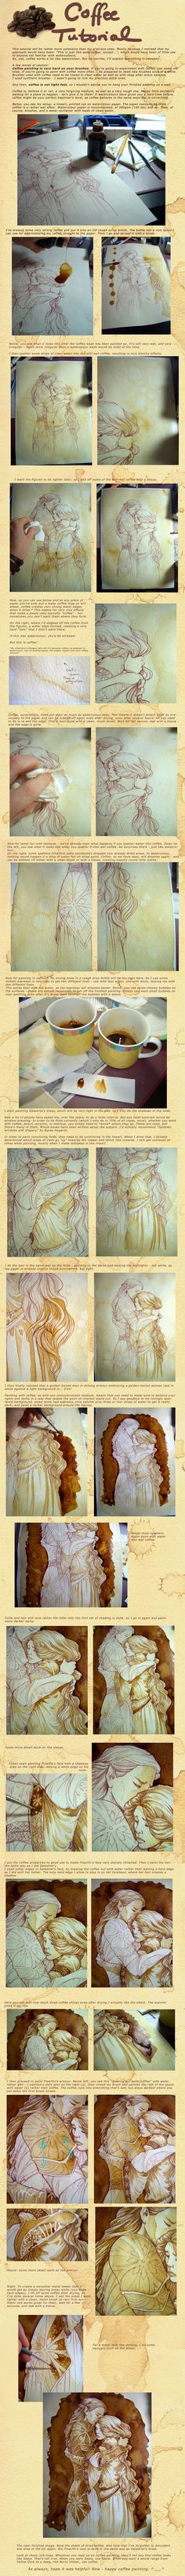 Painting with Coffee by Gold-Seven resource tool how to tutorial instructions | Create your own roleplaying game material w/ RPG Bard: www.rpgbard.com | Writing inspiration for Dungeons and Dragons DND D&D Pathfinder PFRPG Warhammer 40k Star Wars Shadowrun Call of Cthulhu Lord of the Rings LoTR + d20 fantasy science fiction scifi horror design | Not Trusty Sword art: click artwork for source